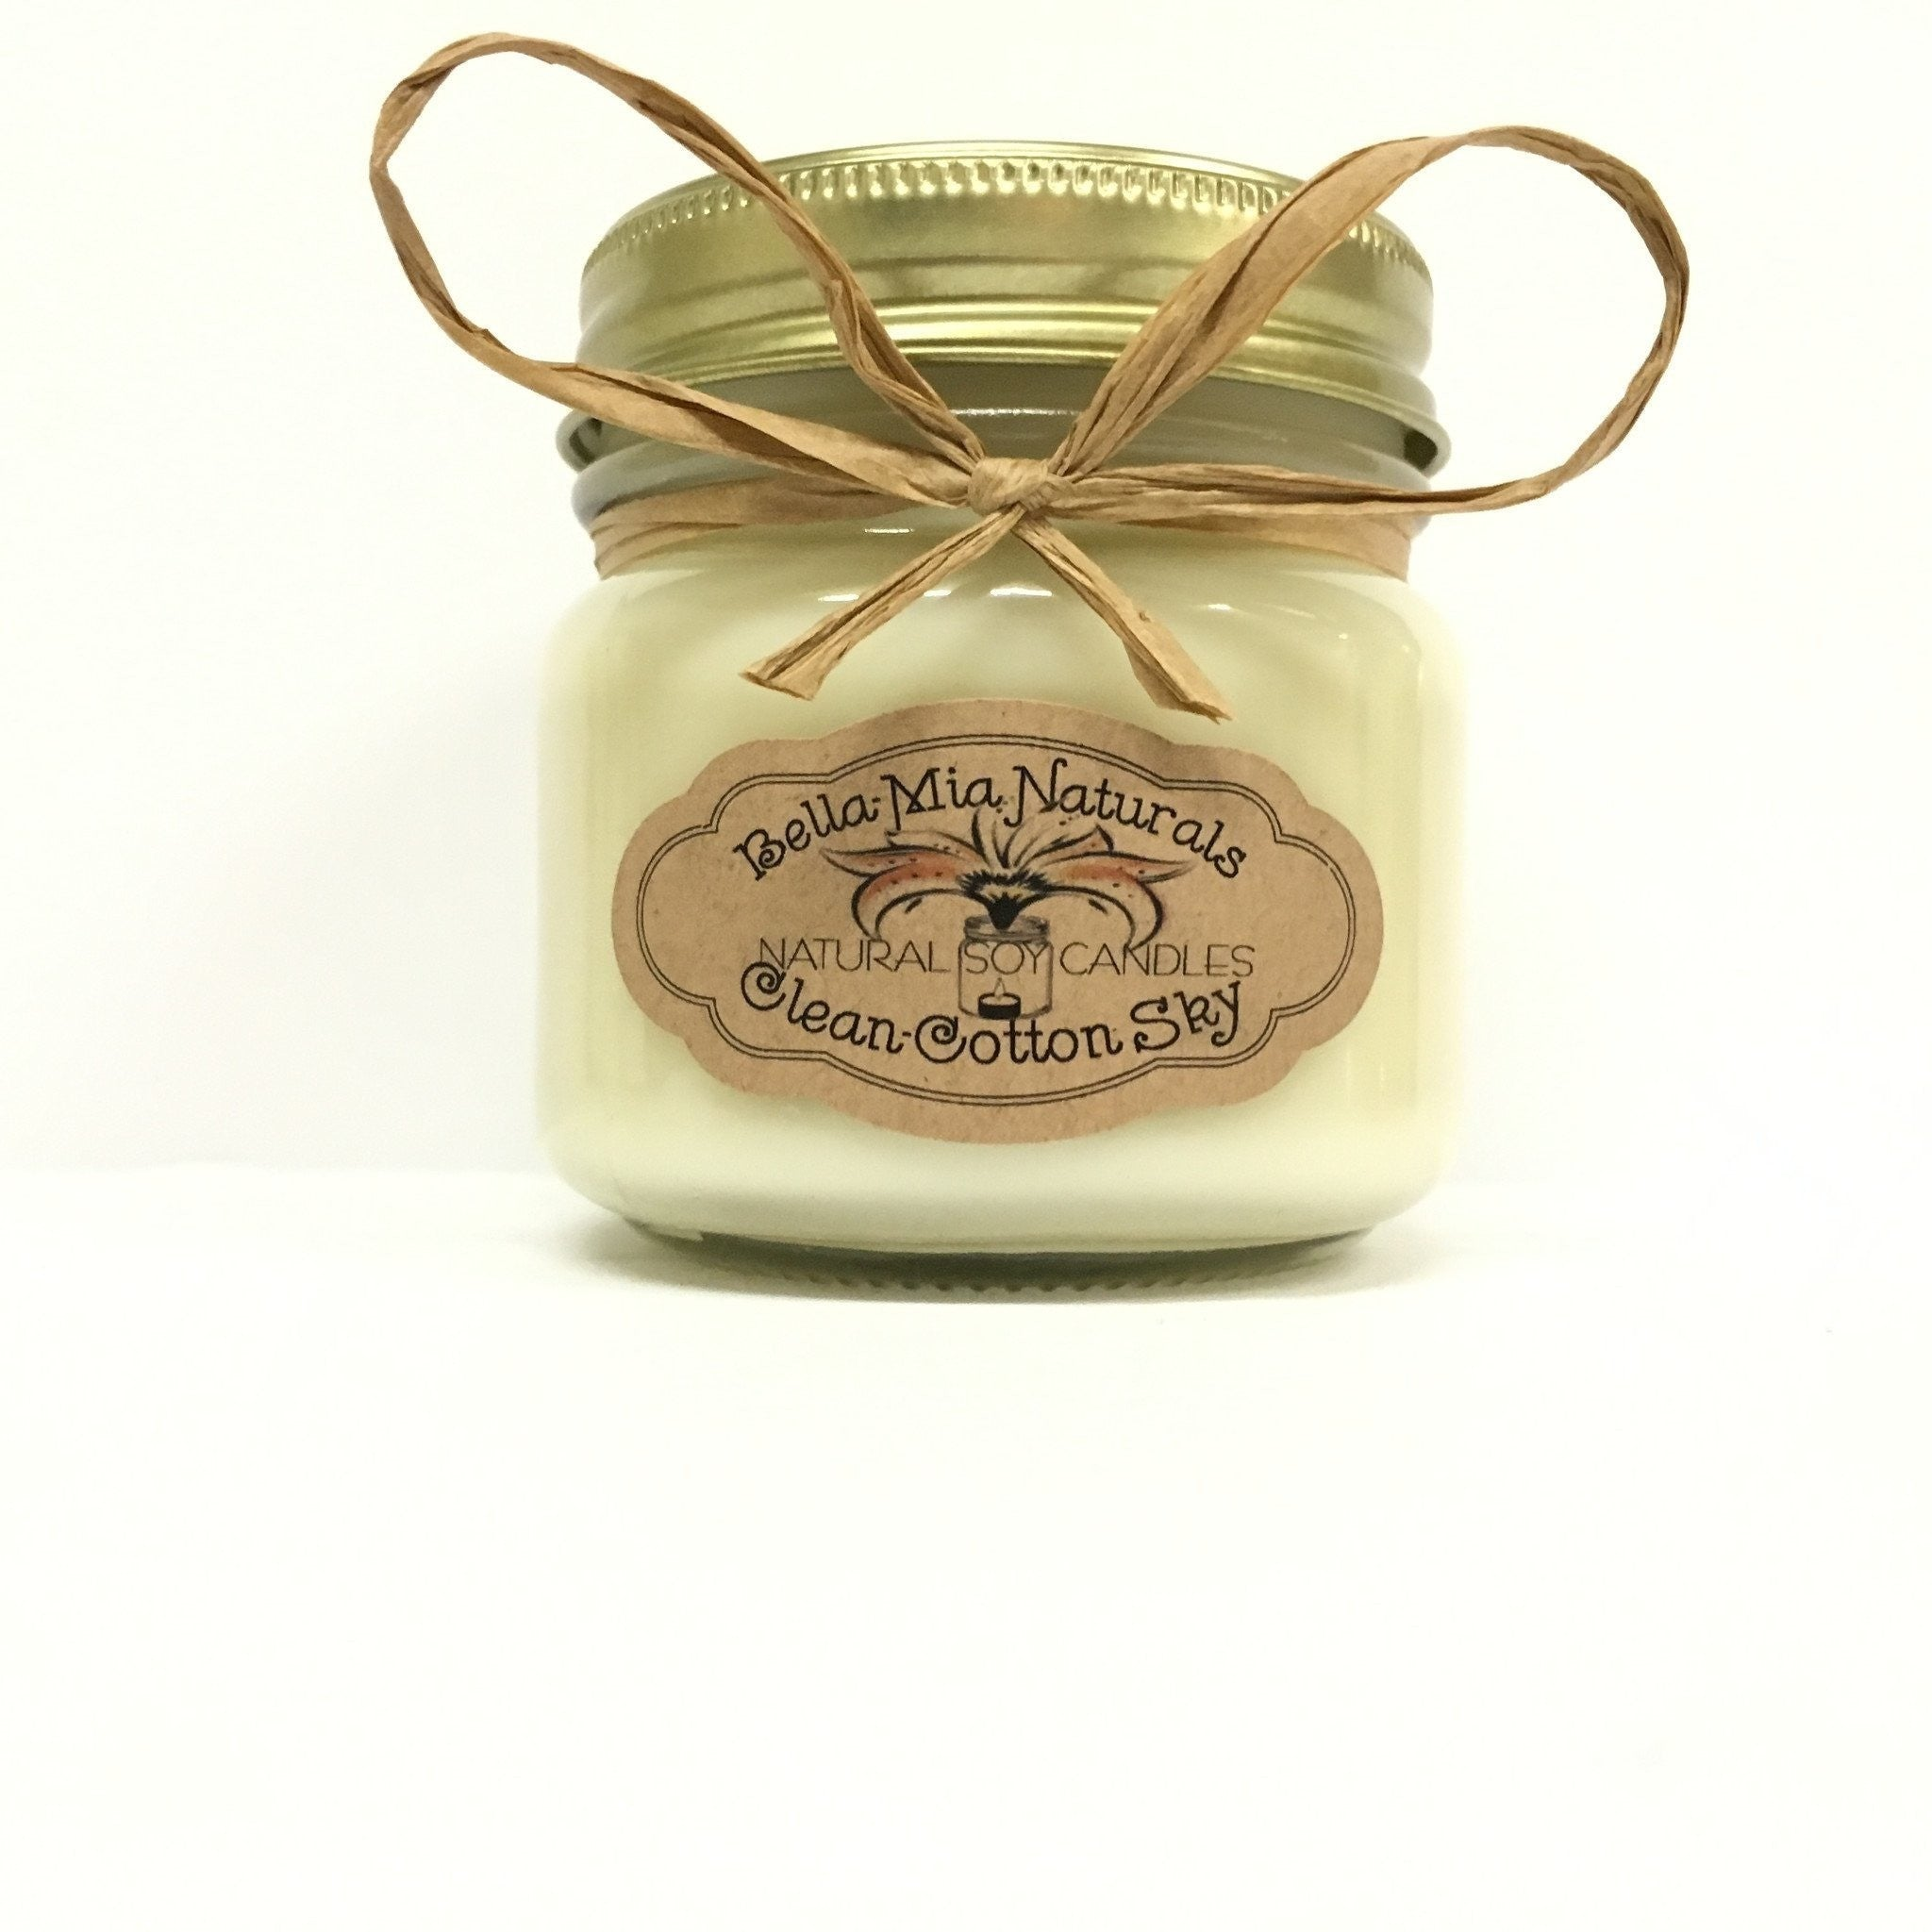 Clean Cotton-Sky Natural Hand Poured Soy Candles - Half-Pint - Bella-Mia Naturals All Natural Soy Candles & Lip Balms - 4